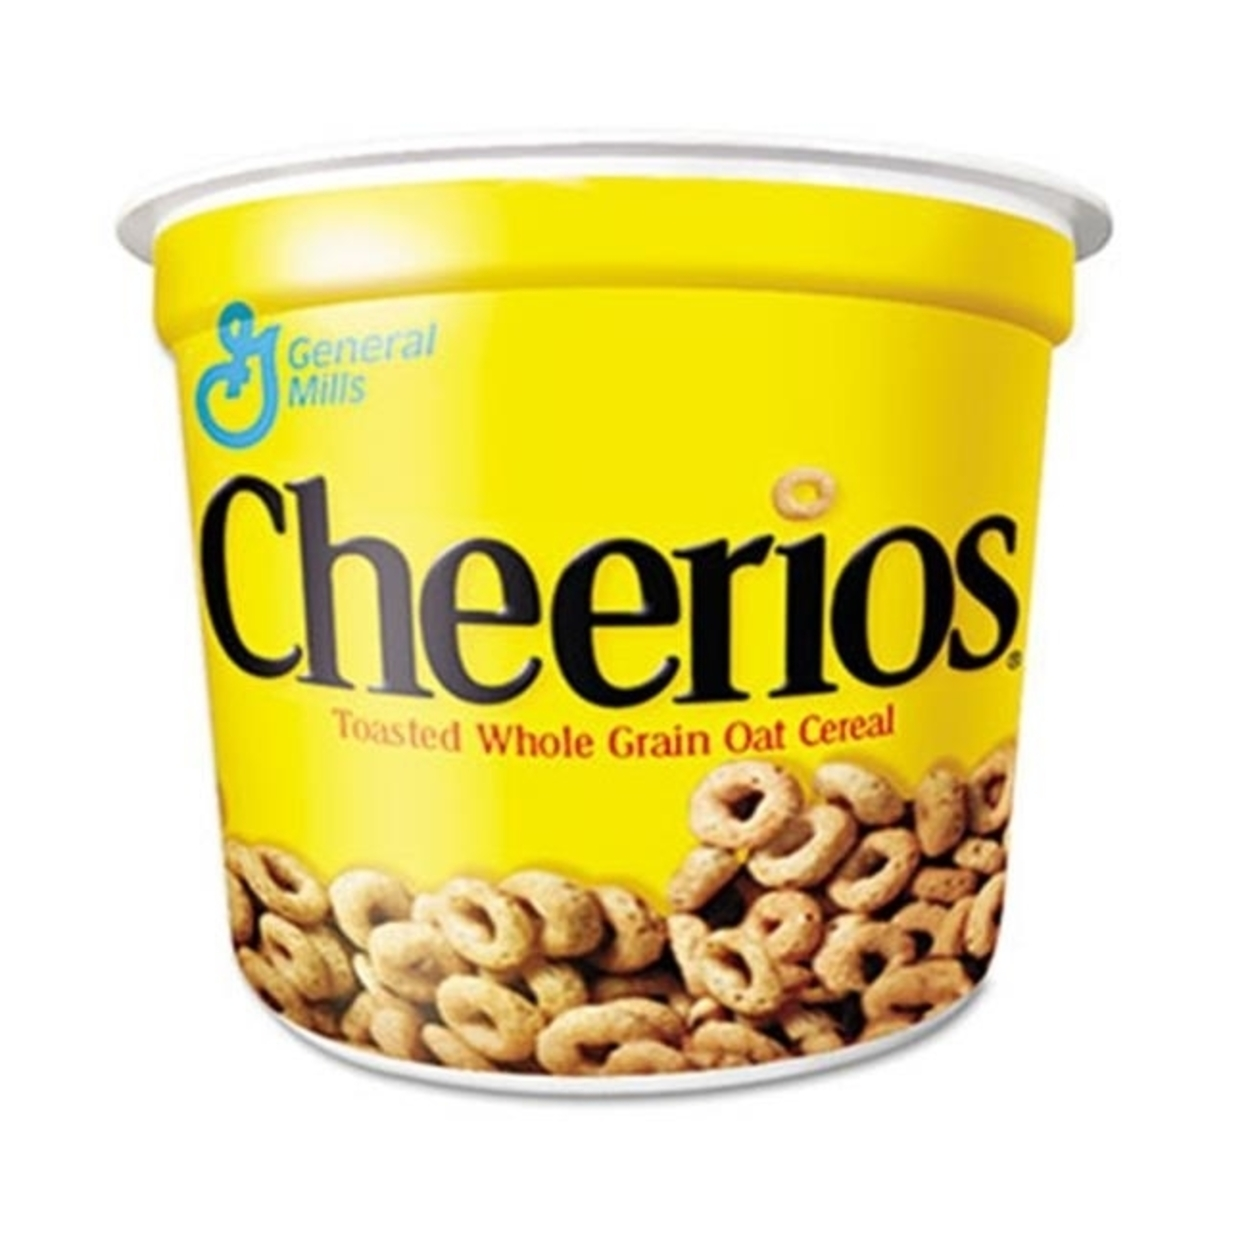 General Mills Sn13896 Cheerios Breakfast Cereal Single-Serve 1.3oz Cup 6 Cups-Pack 5a3bee0c2a00e42a48220a56